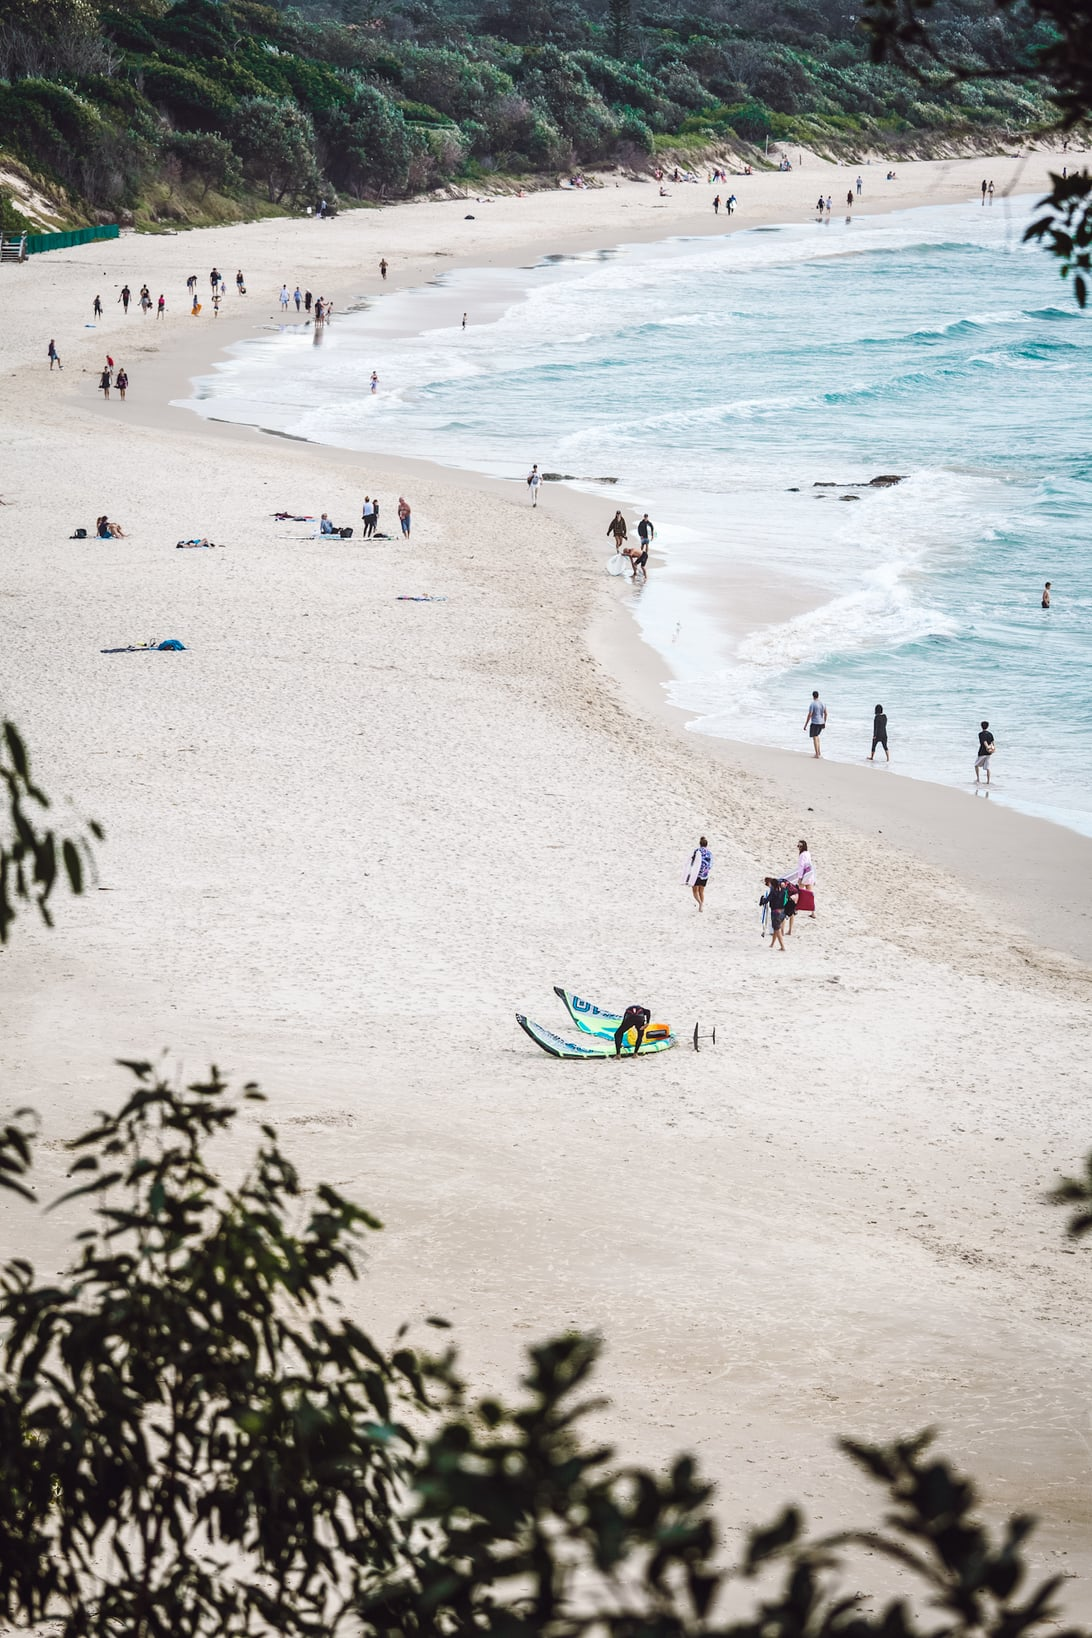 view of a white sand beach in Australia dotted with sunbathers and people walking in the suf